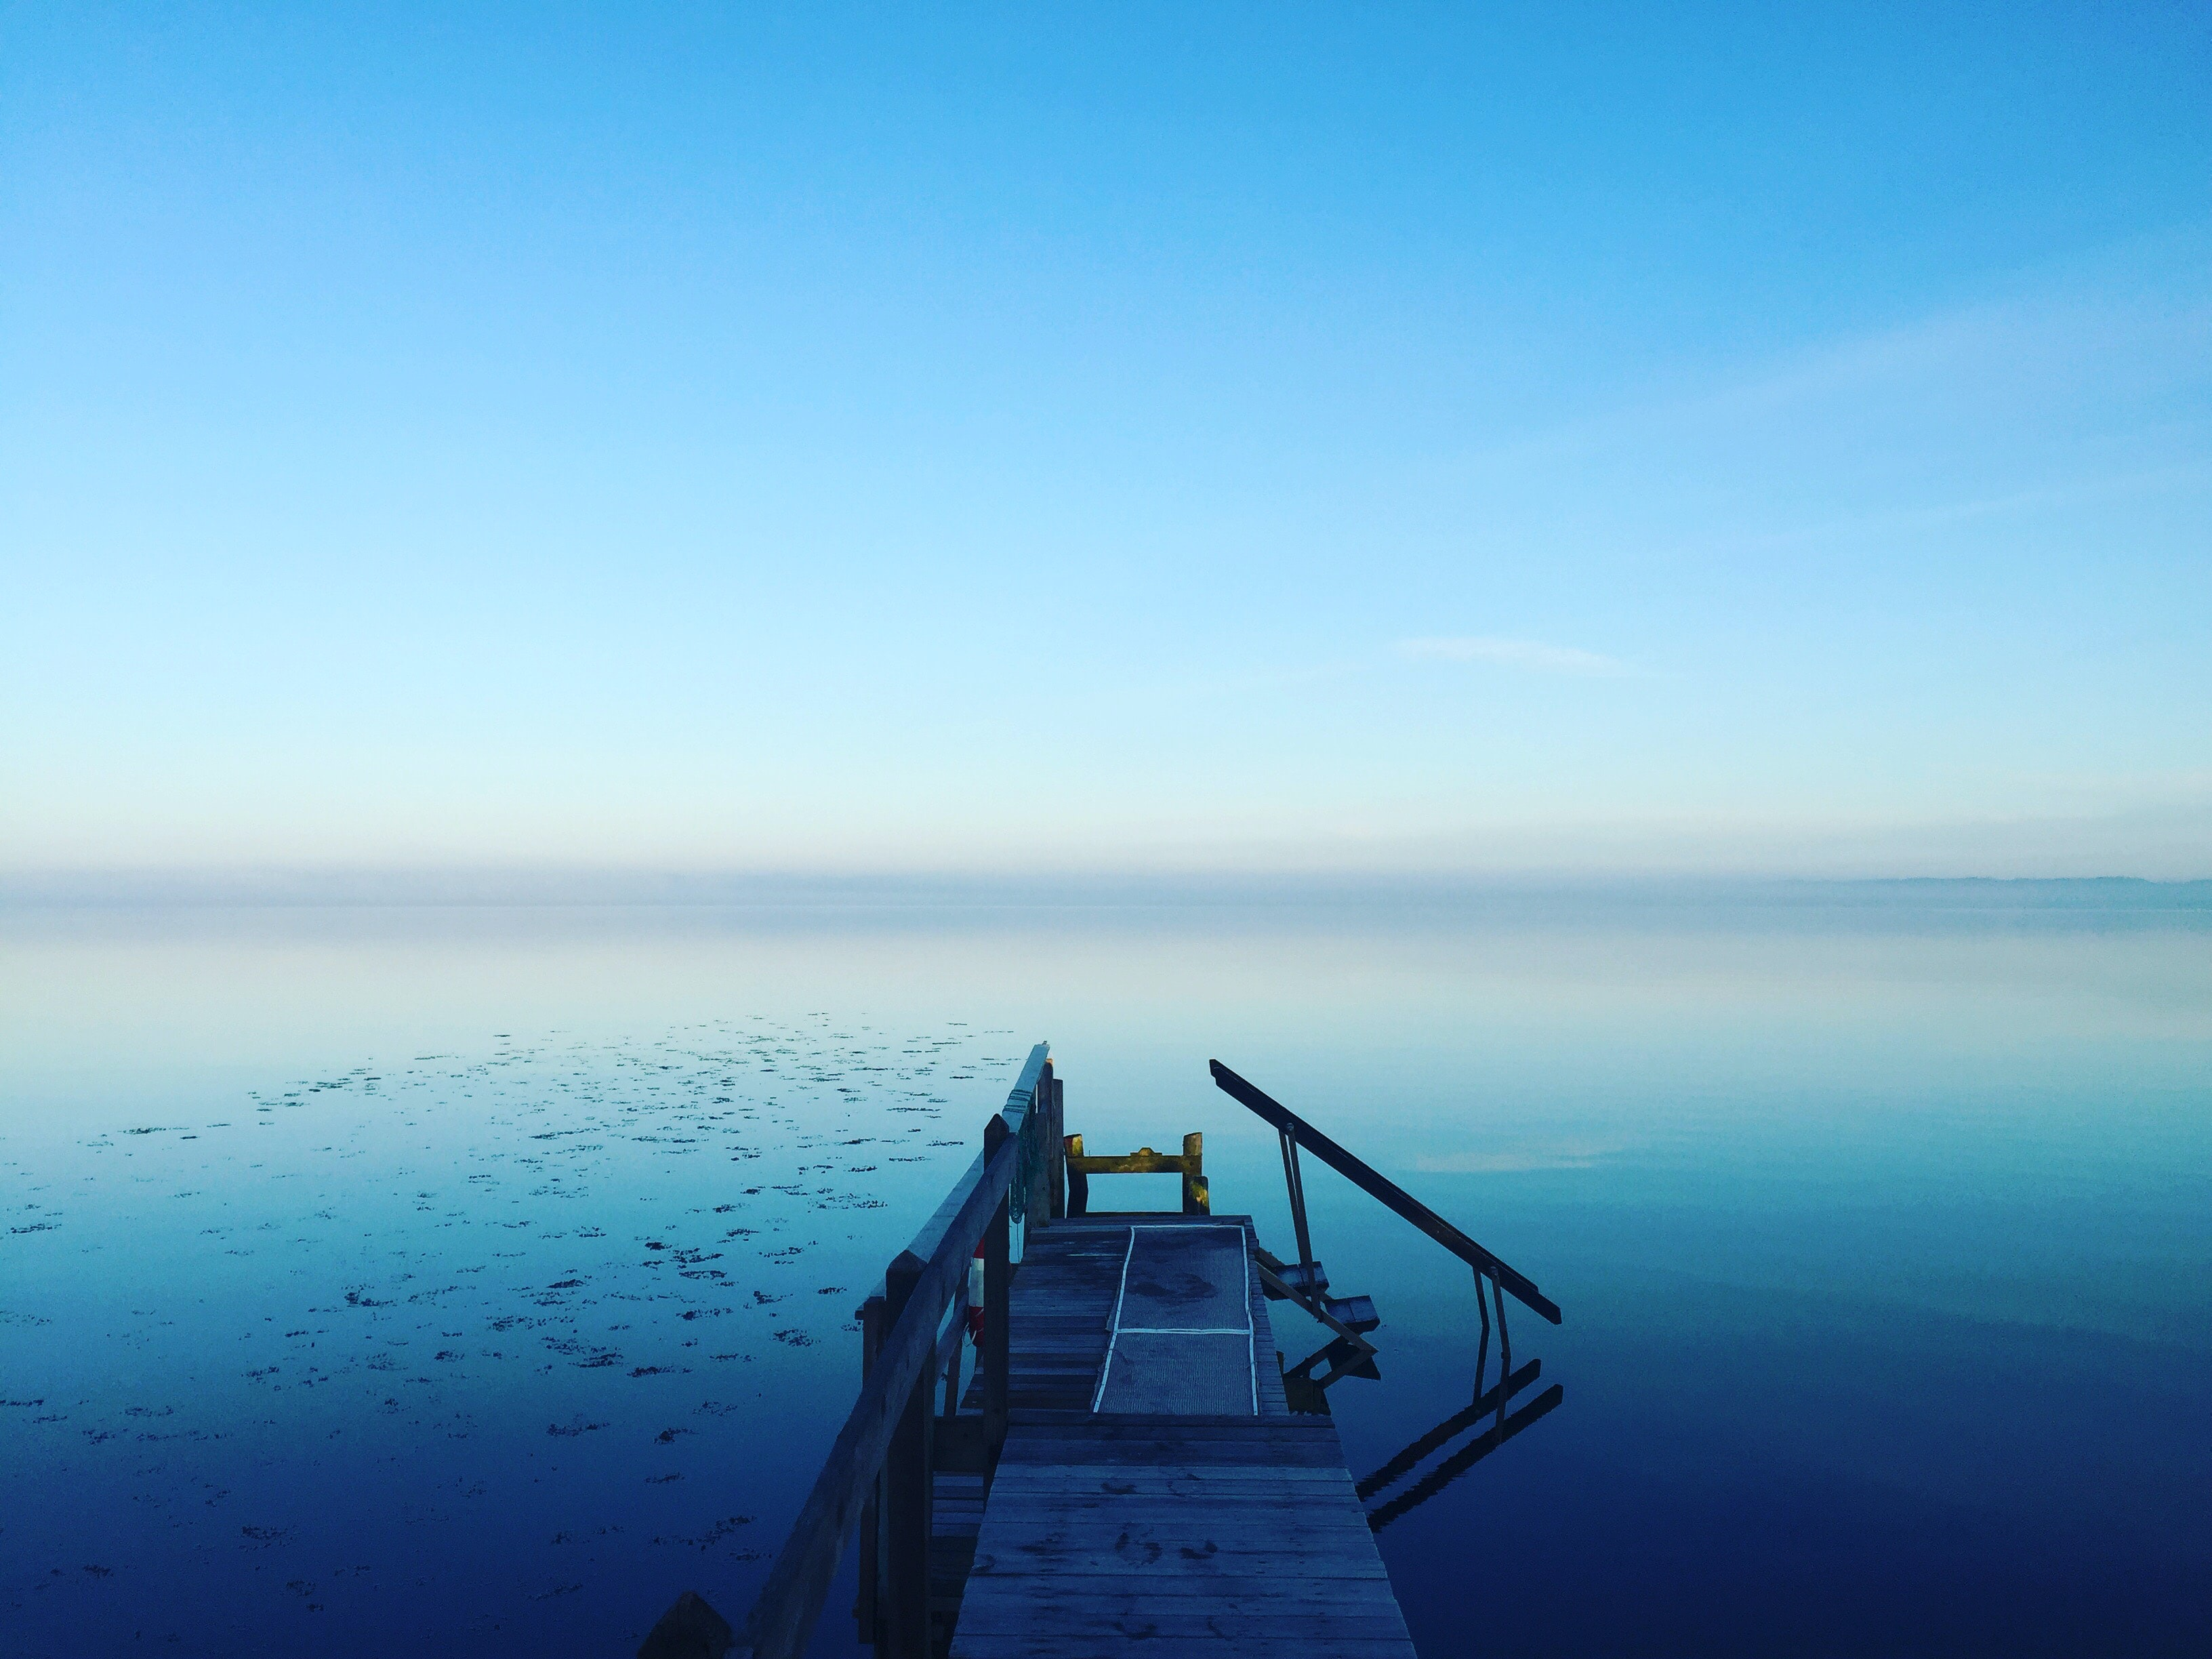 photography of calm body of water